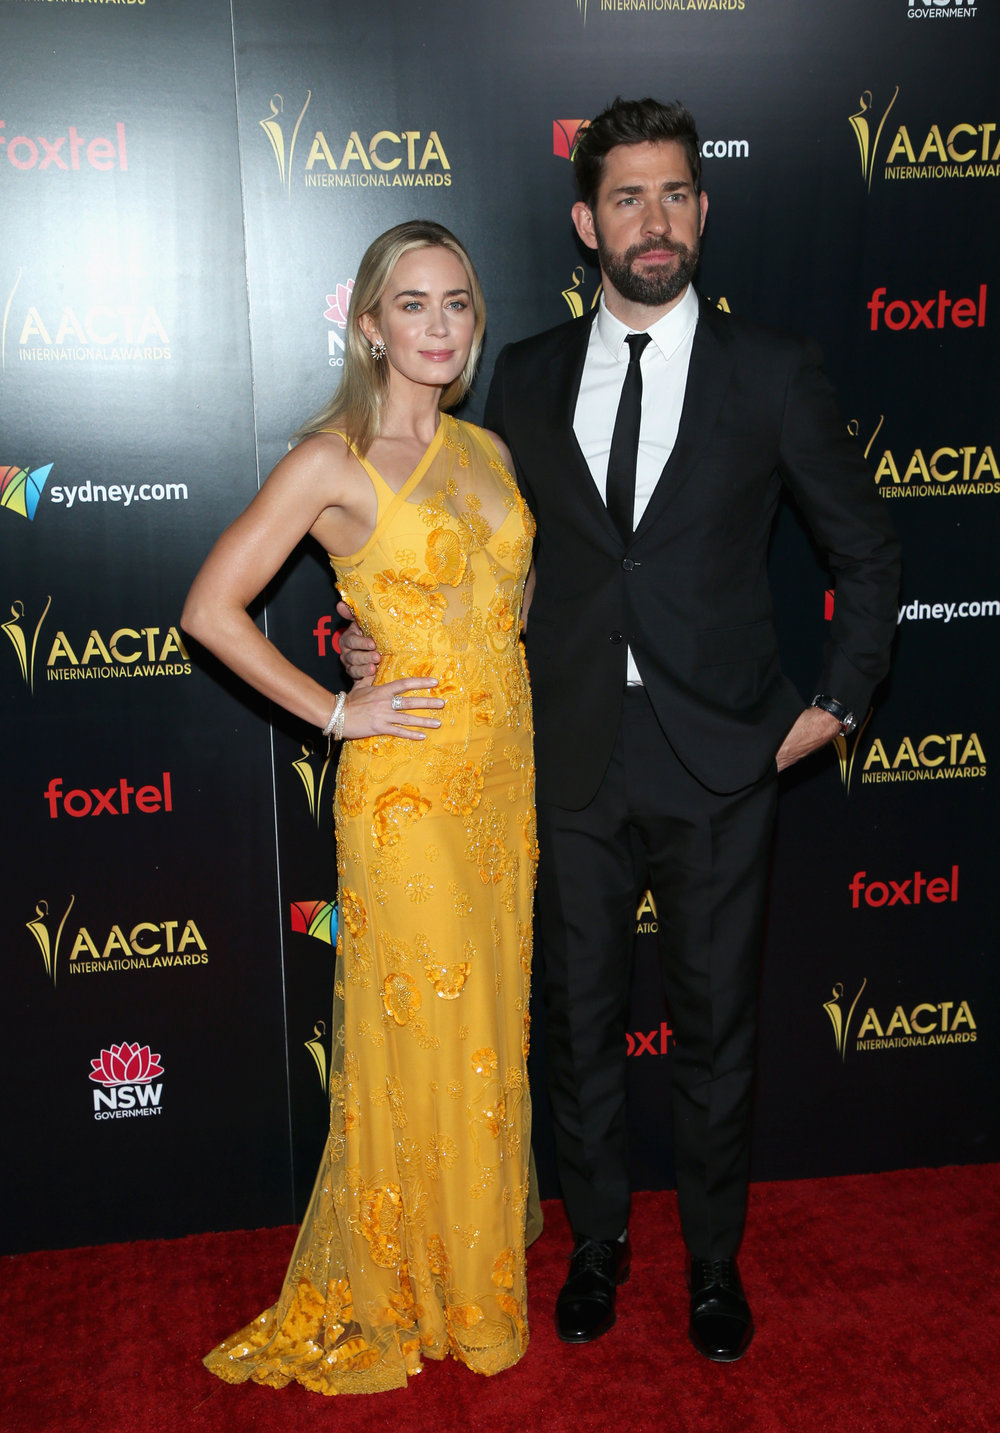 775191456PL00121_8th_AACTA_.JPG